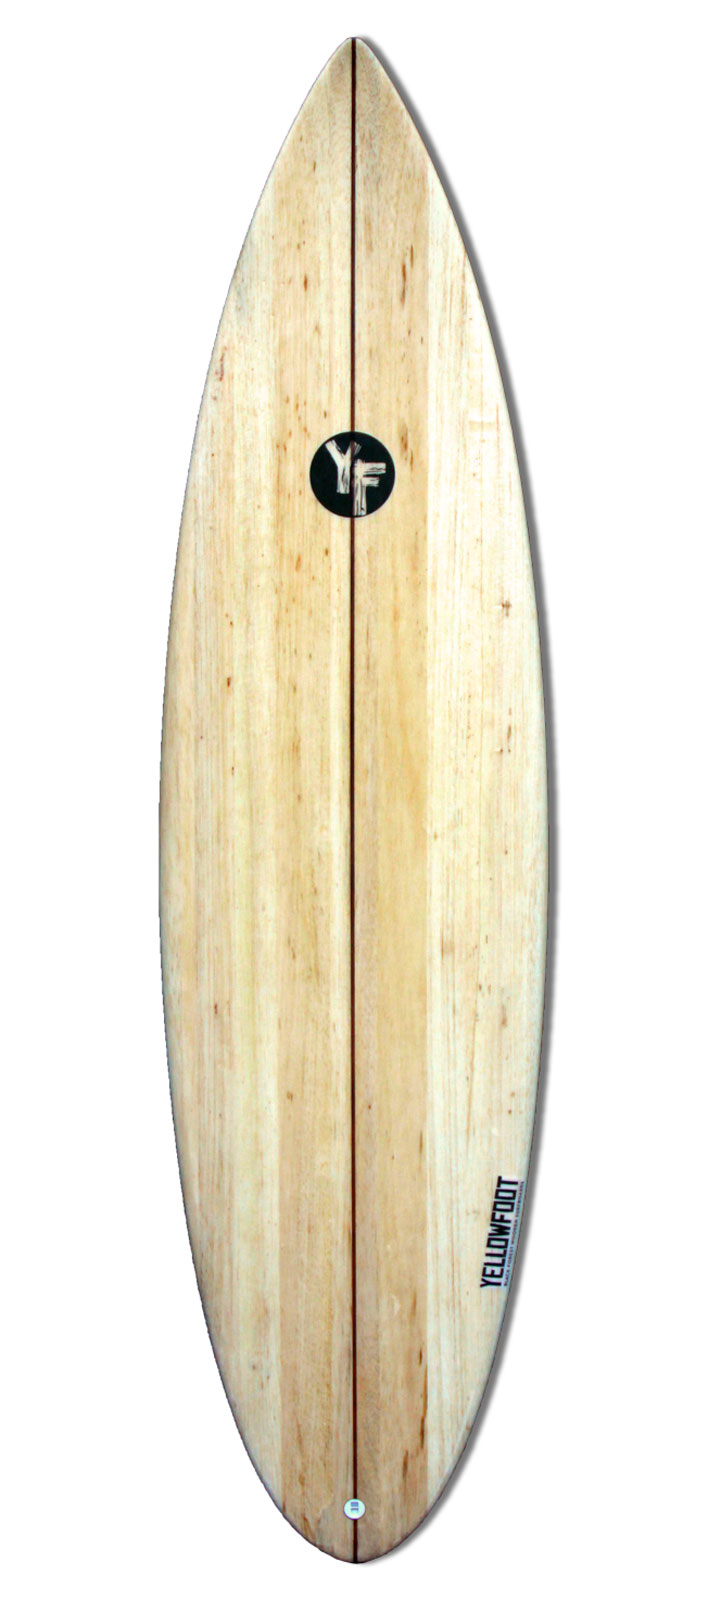 Shortboard-rounded-frei-Deck-HP